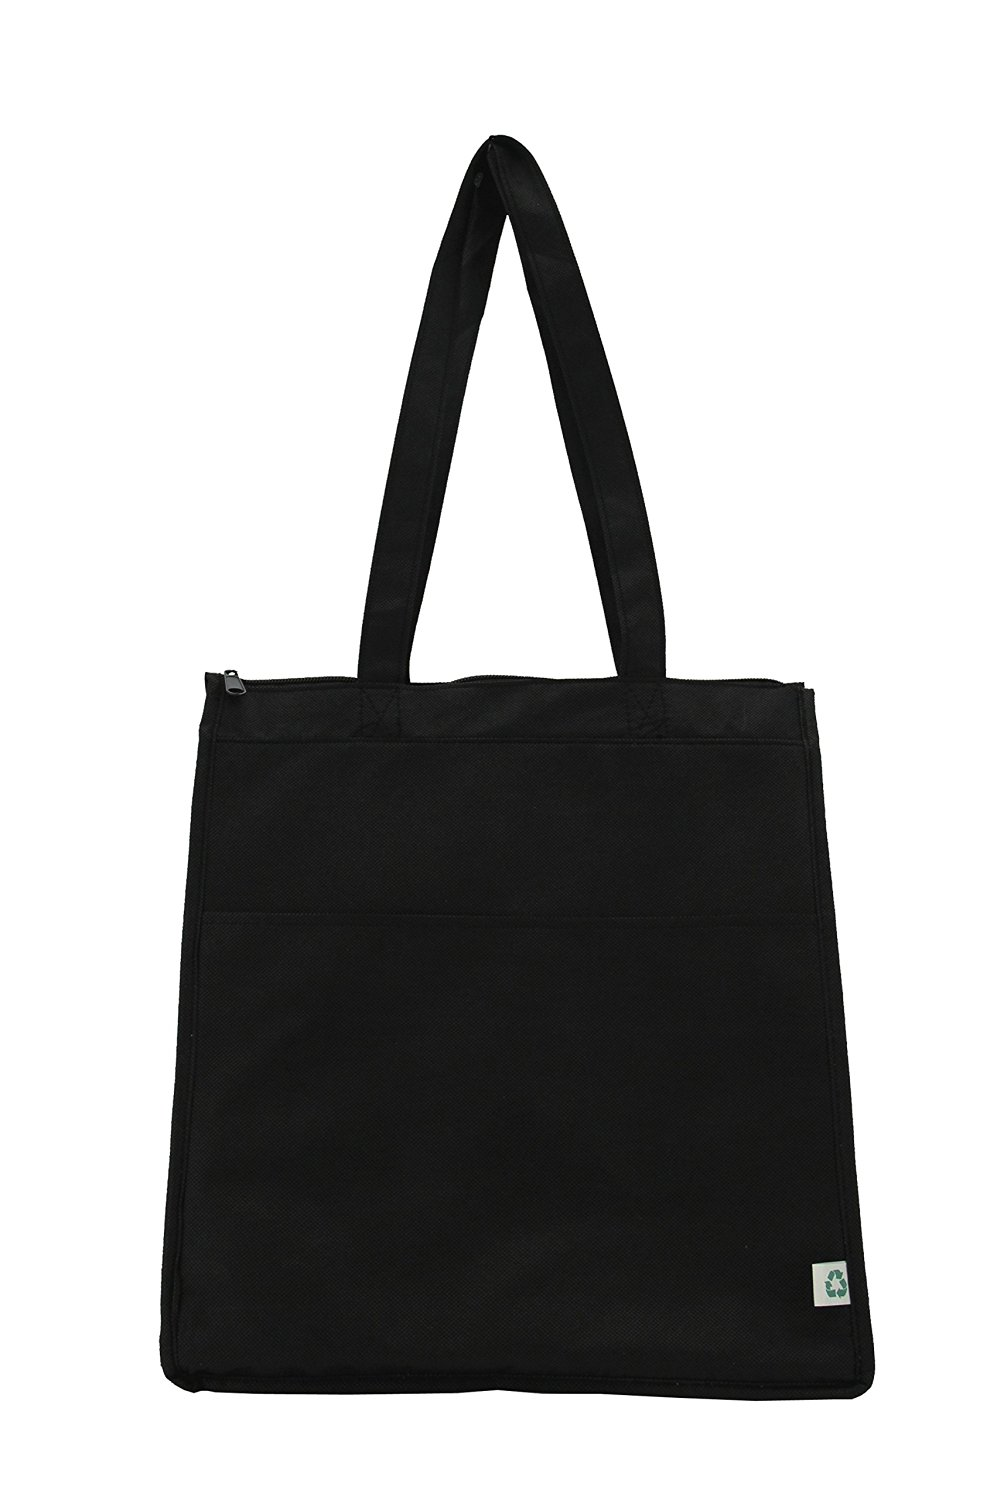 Insulated Zippered Hot & Cold Cooler Tote - Large